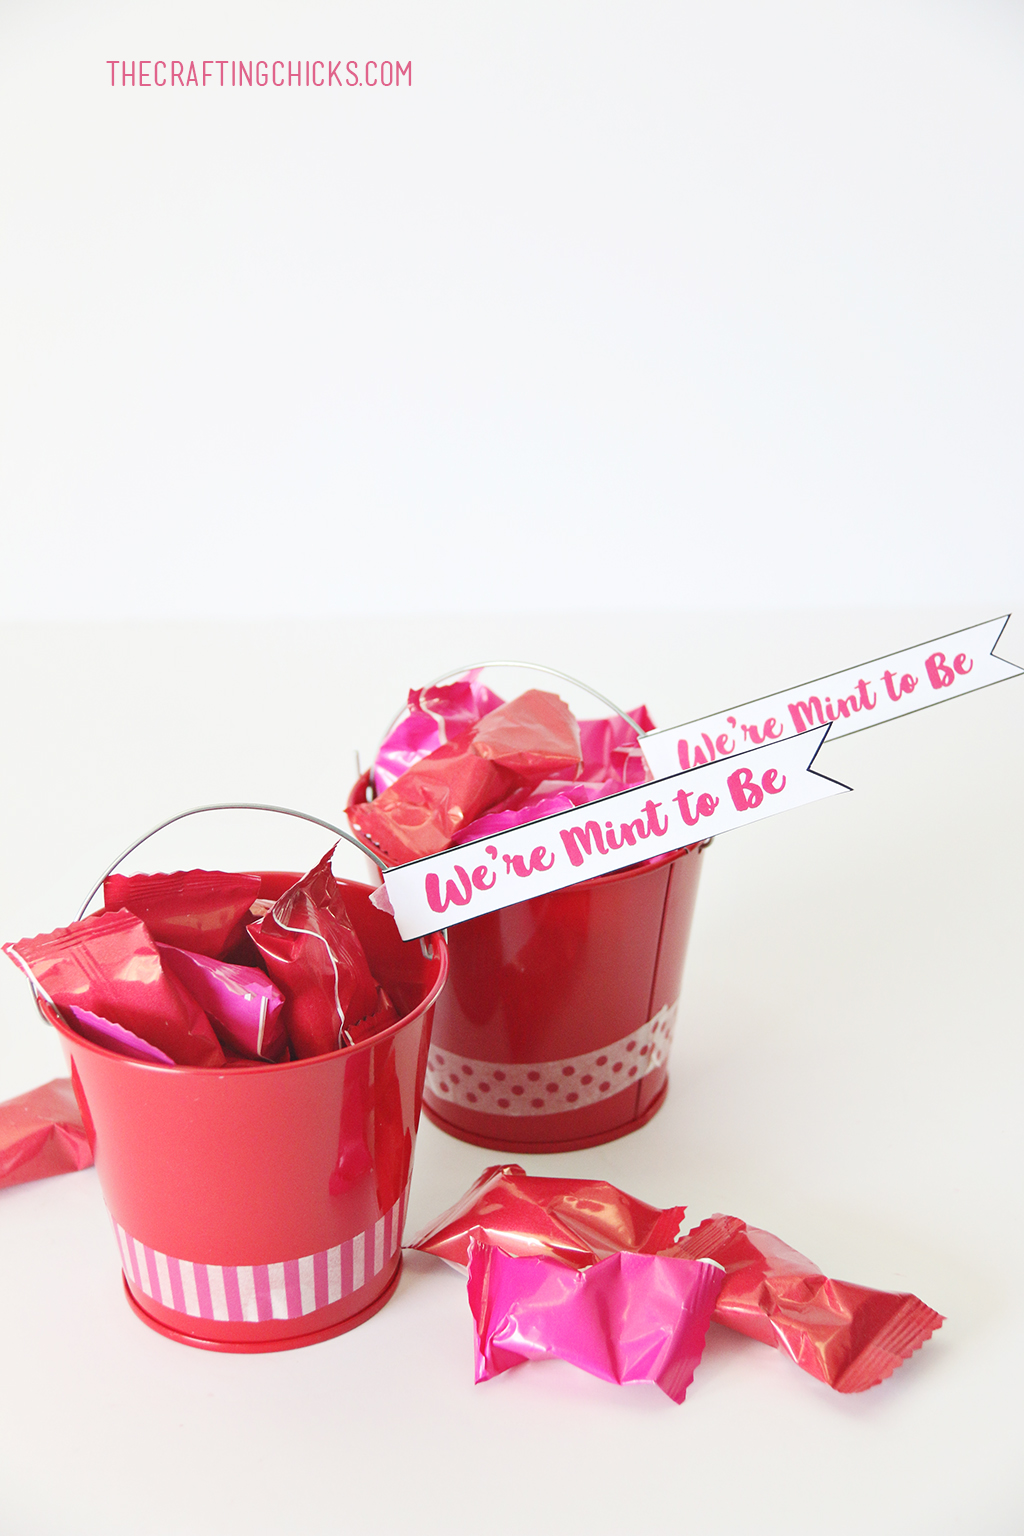 We're Mint to Be Printable Valentines are the perfect Valentine gift idea for friends and neighbors. These adorable buckets filled with mints or gum will be a hit with young and young at heart.